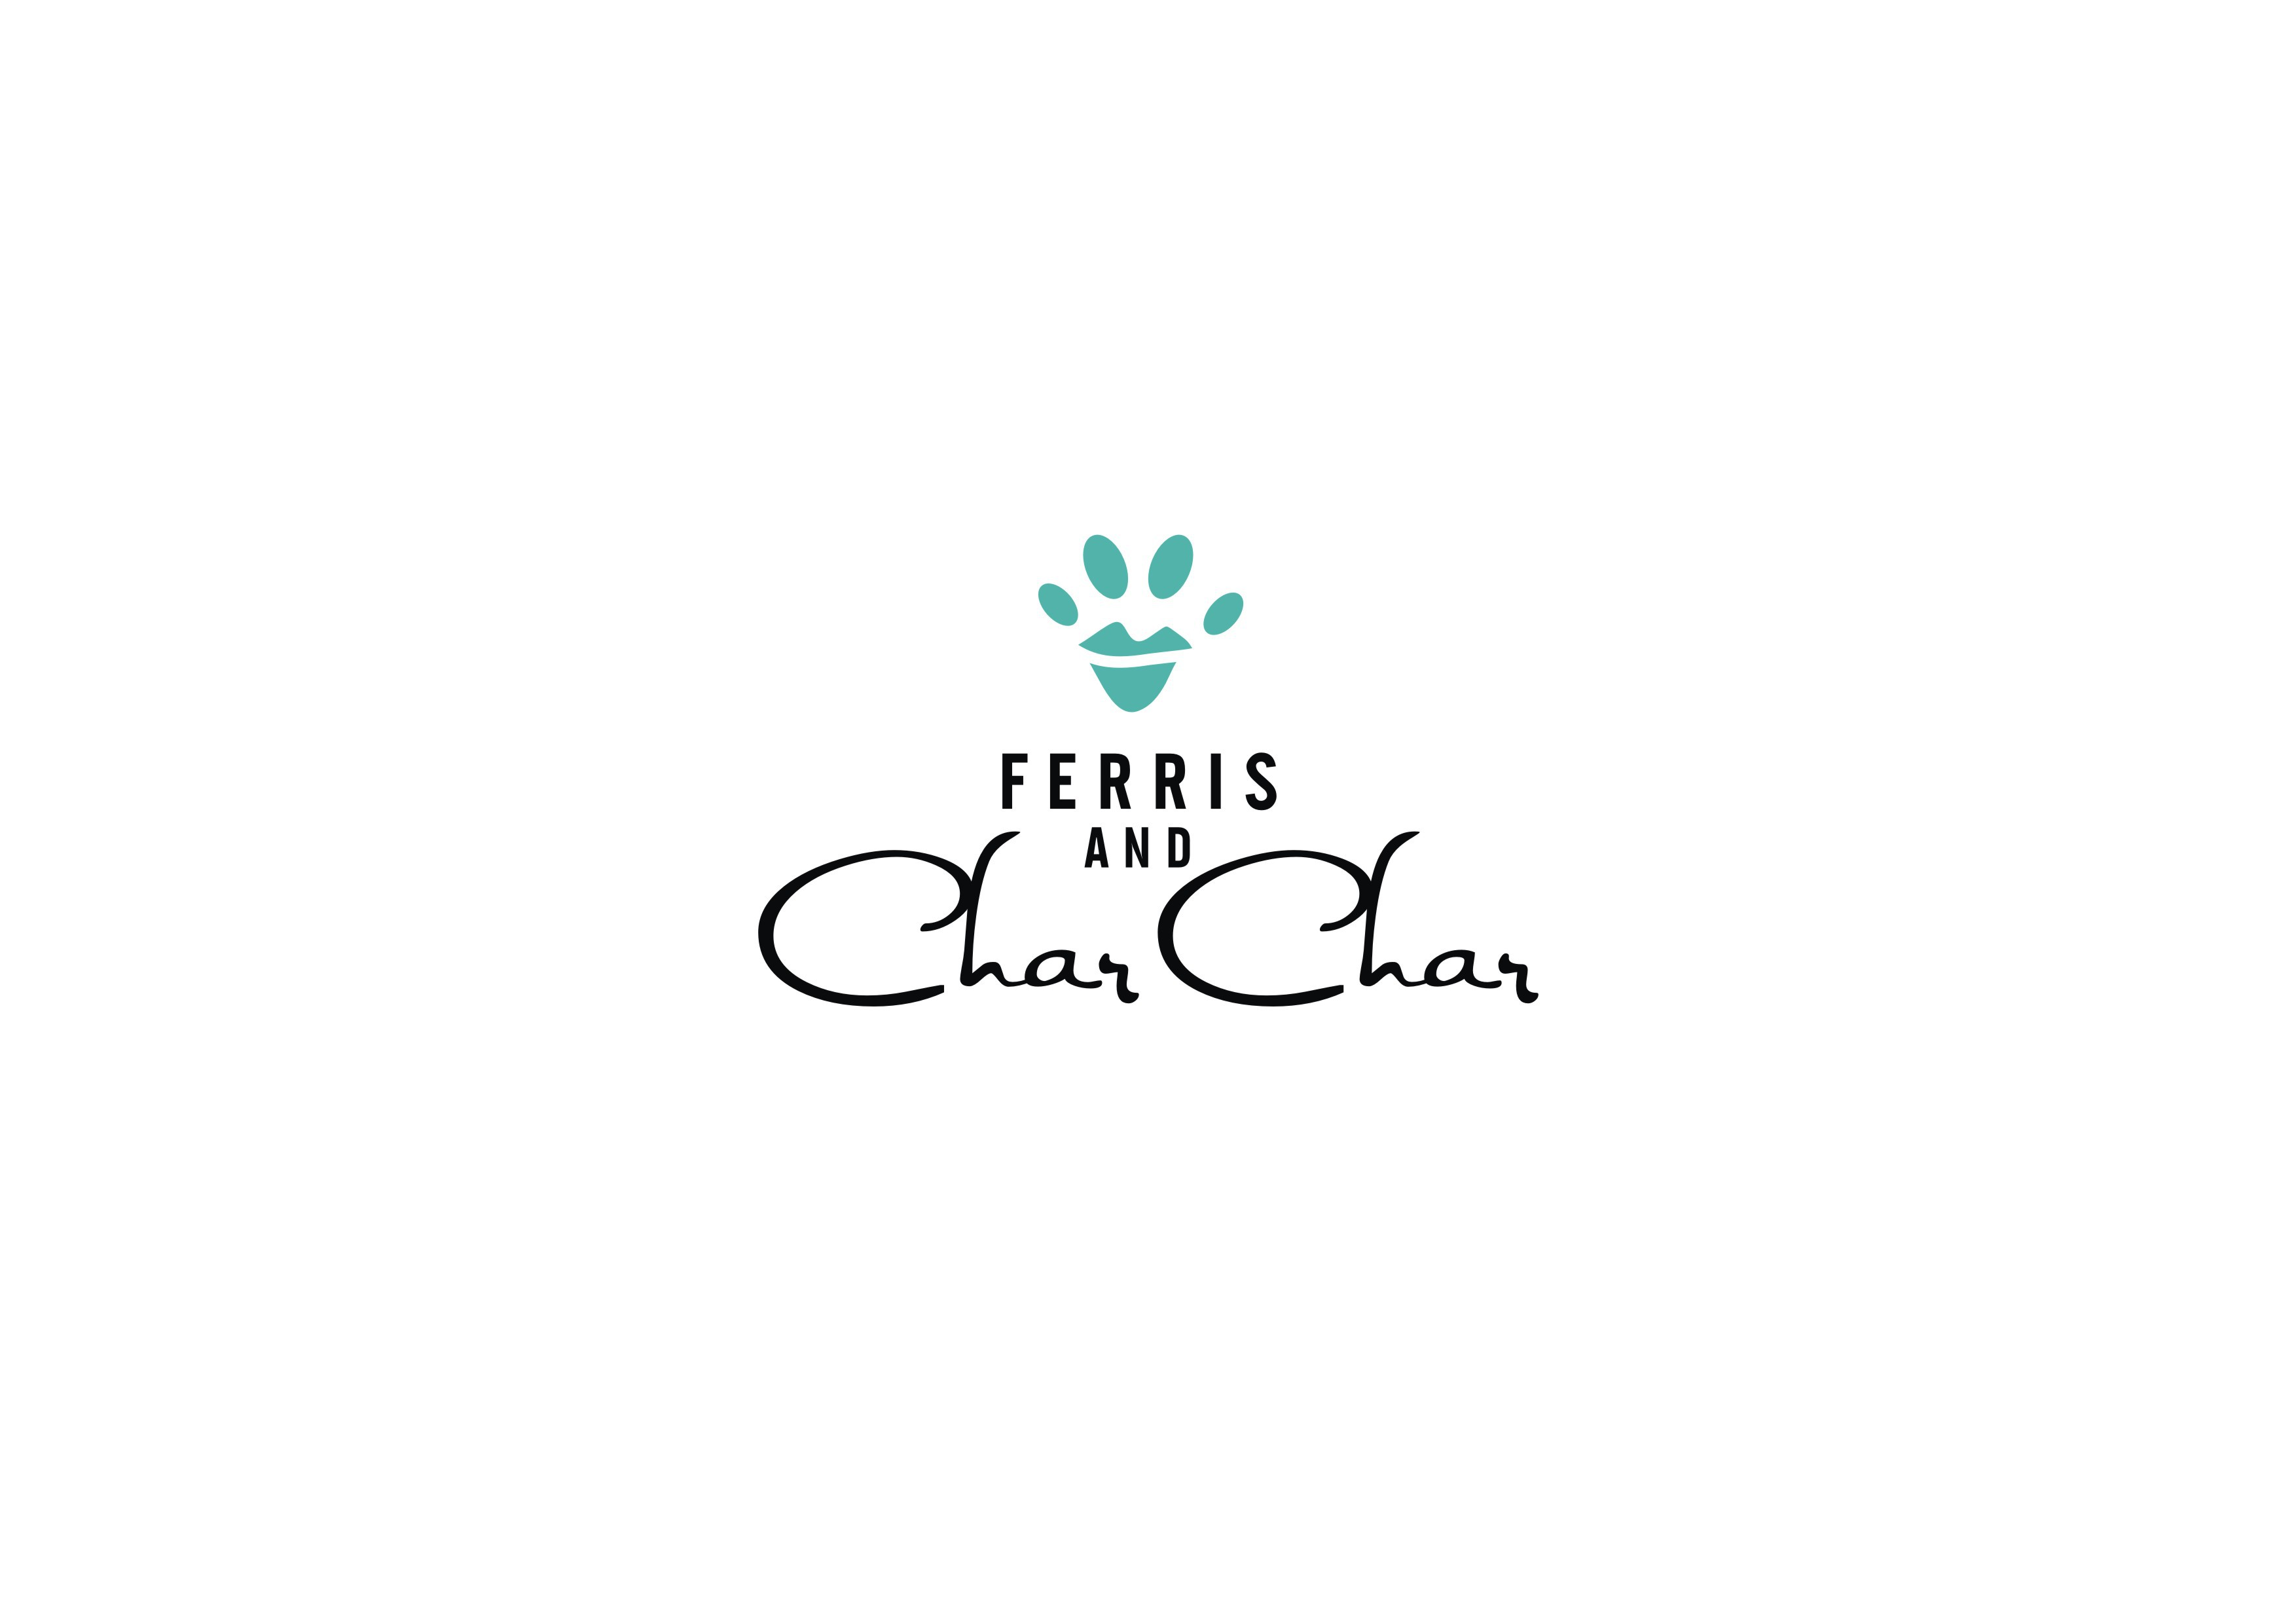 Animal themed Cosmetics Company looking for feminine design, sophisticated yet fun and simple